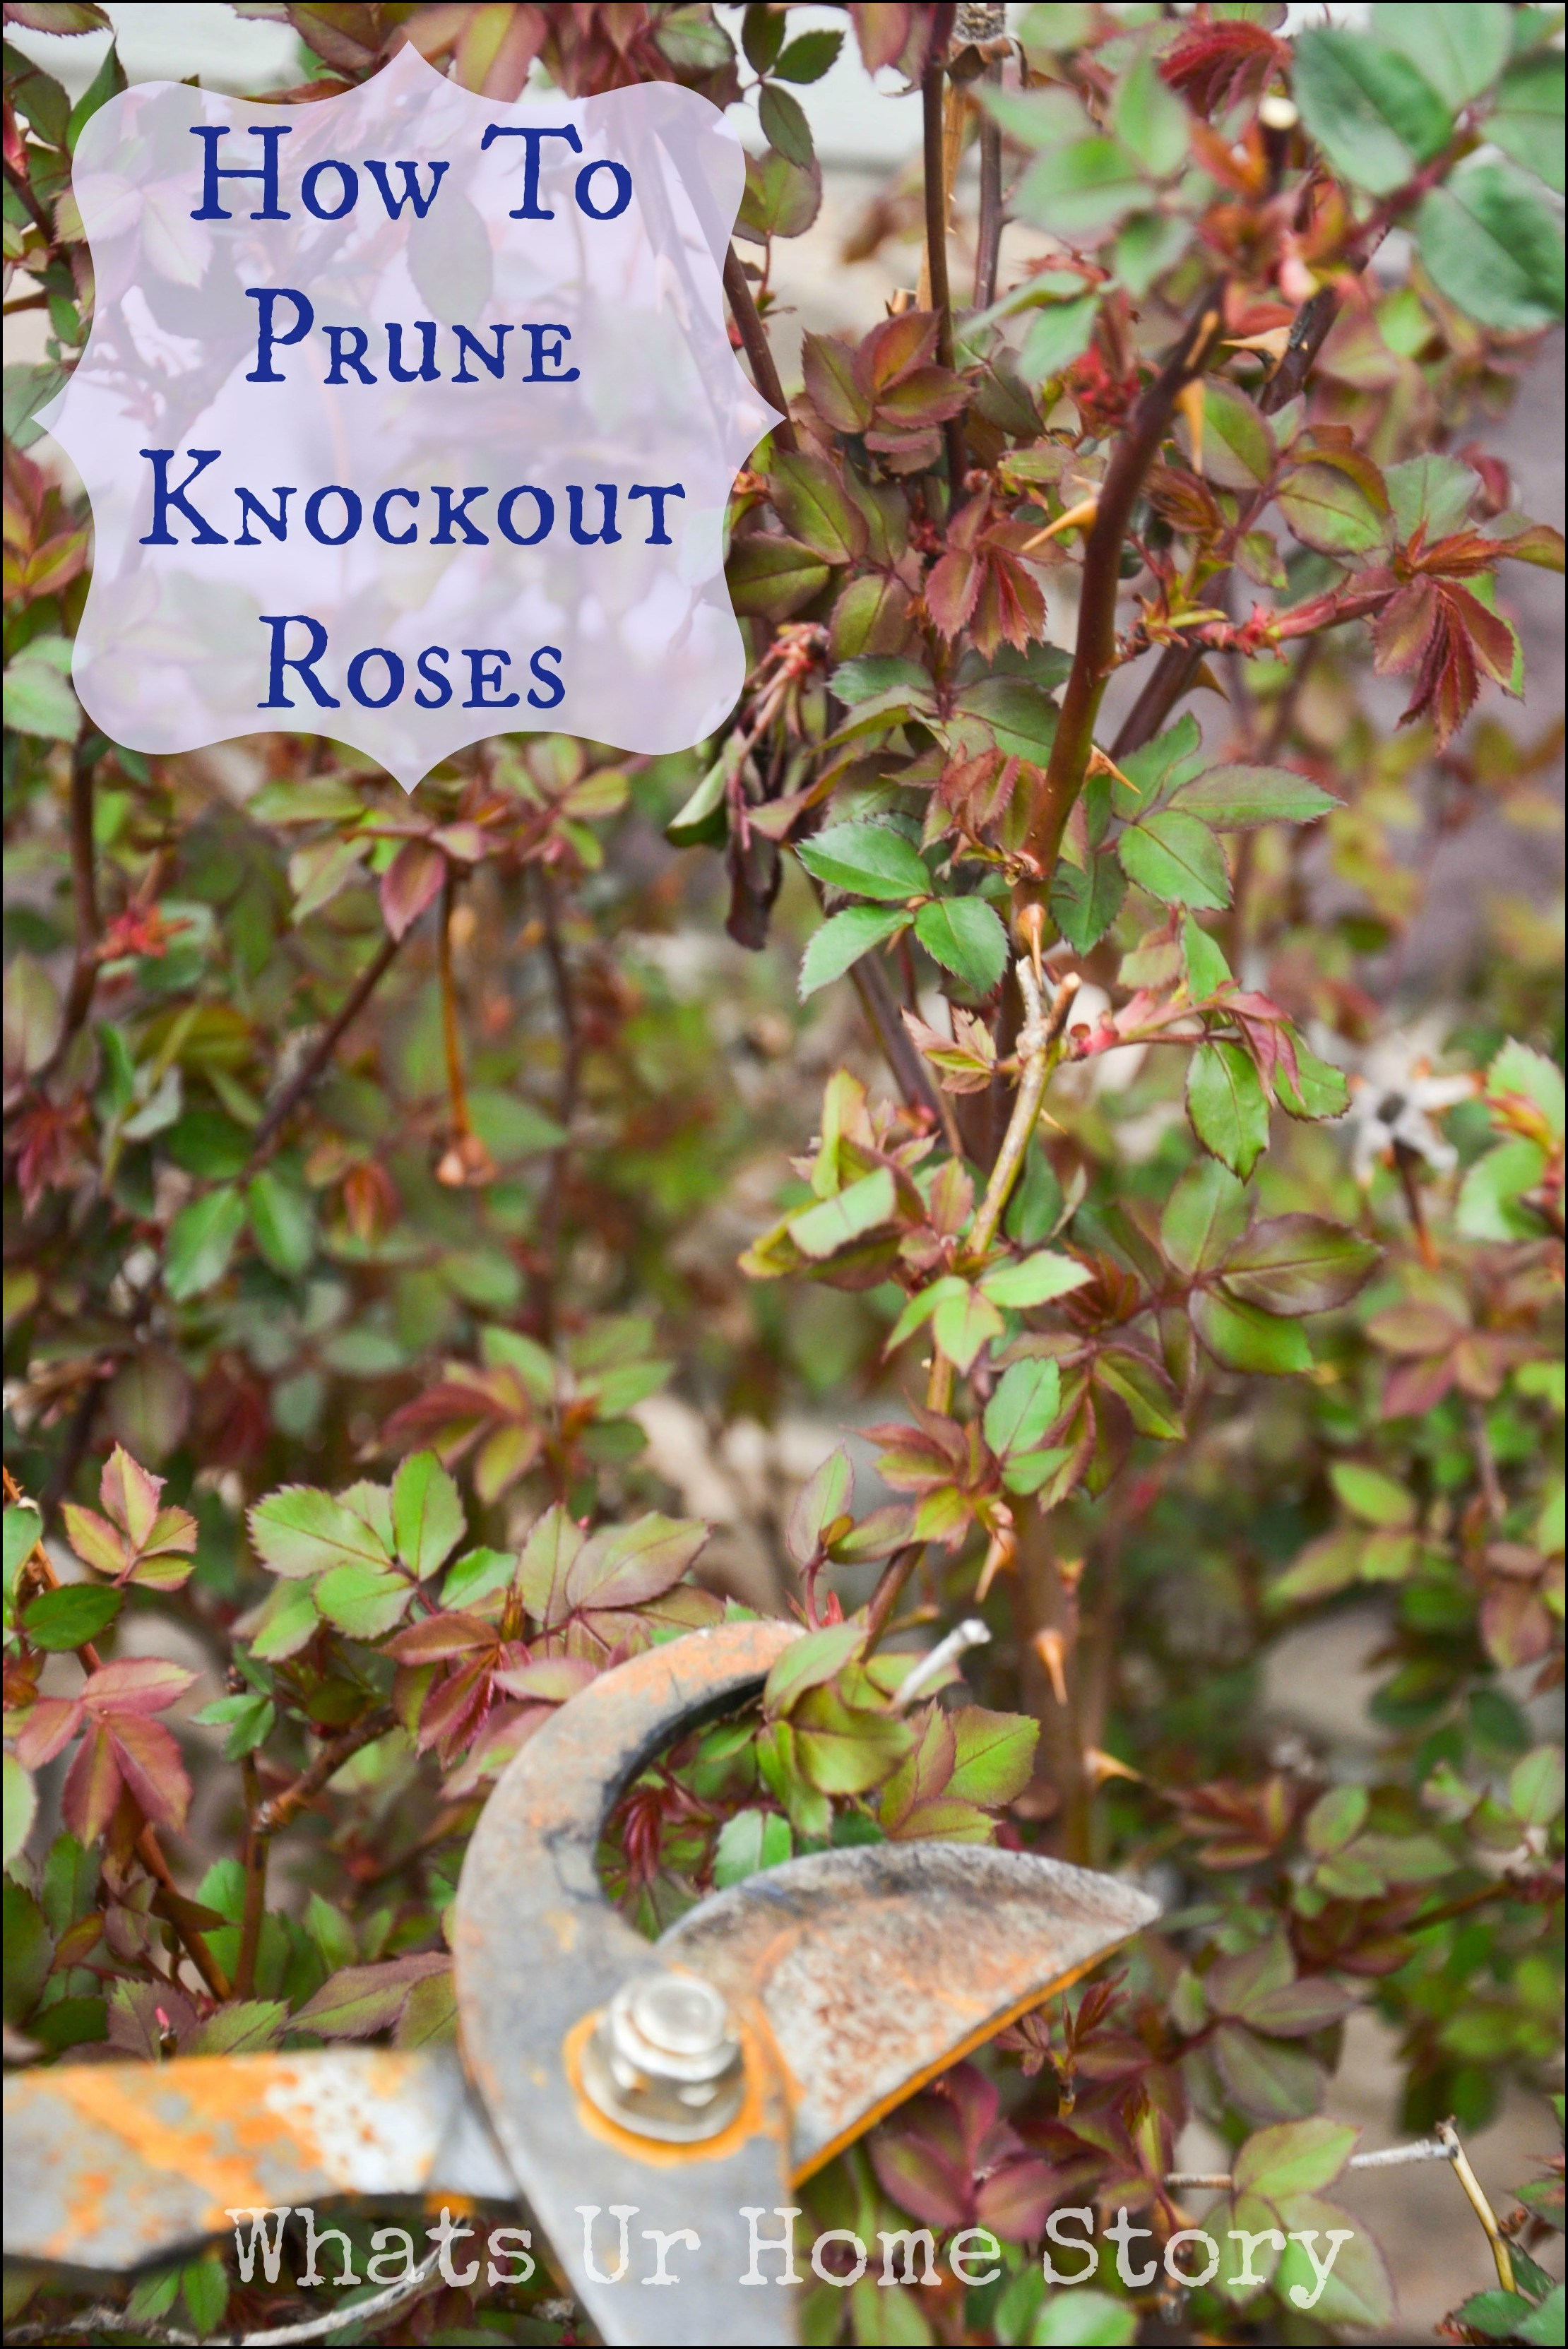 How To Prune Knockout Rose Bushes